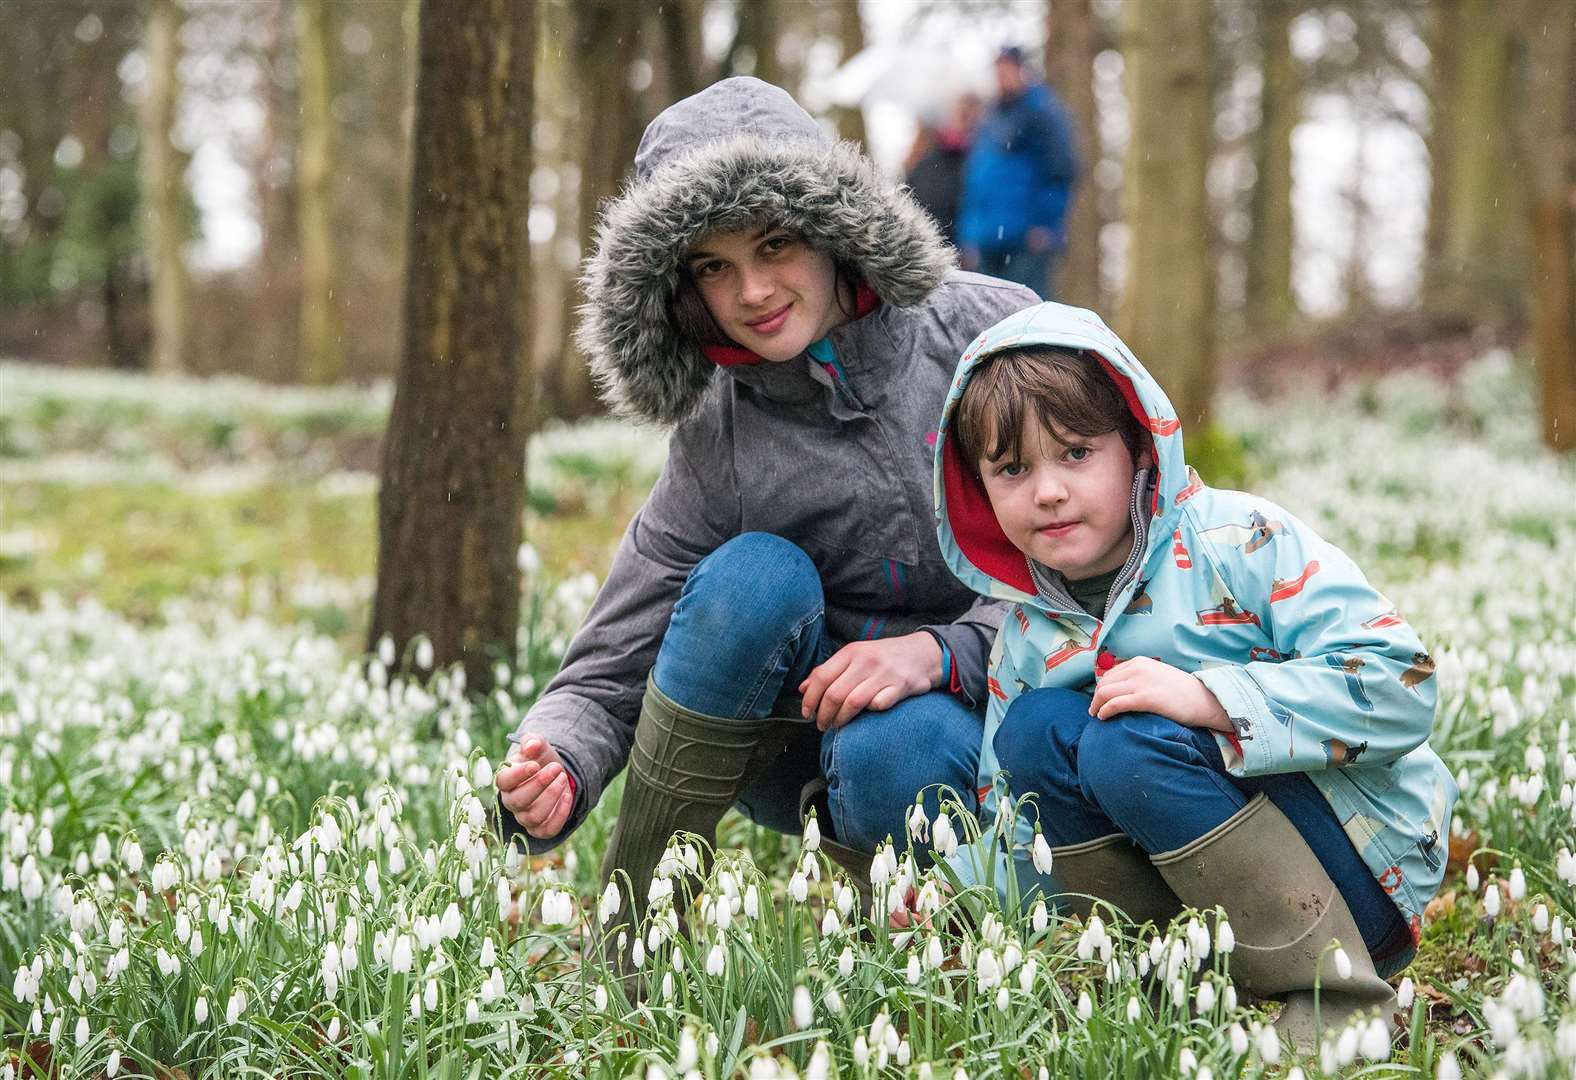 PICTURES: Walkers enjoy arrival of snowdrops at Daws Hall in Lamarsh